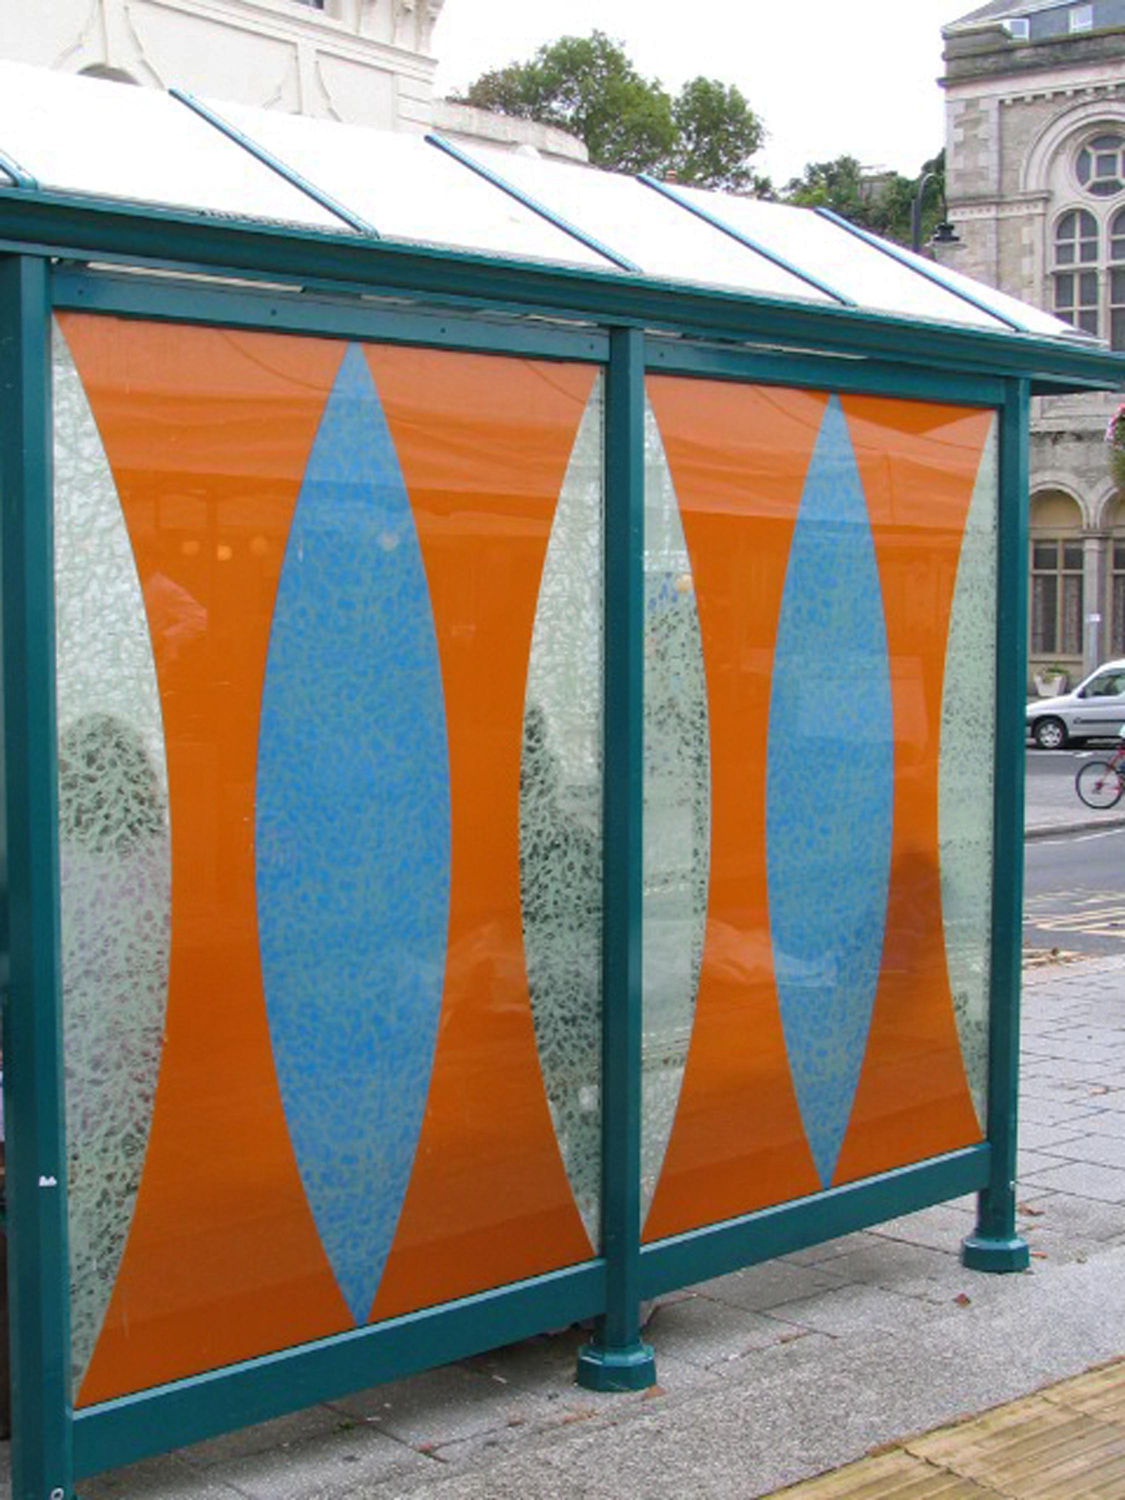 9 The Moor, Falmouth - Bus Shelter Panels.jpg